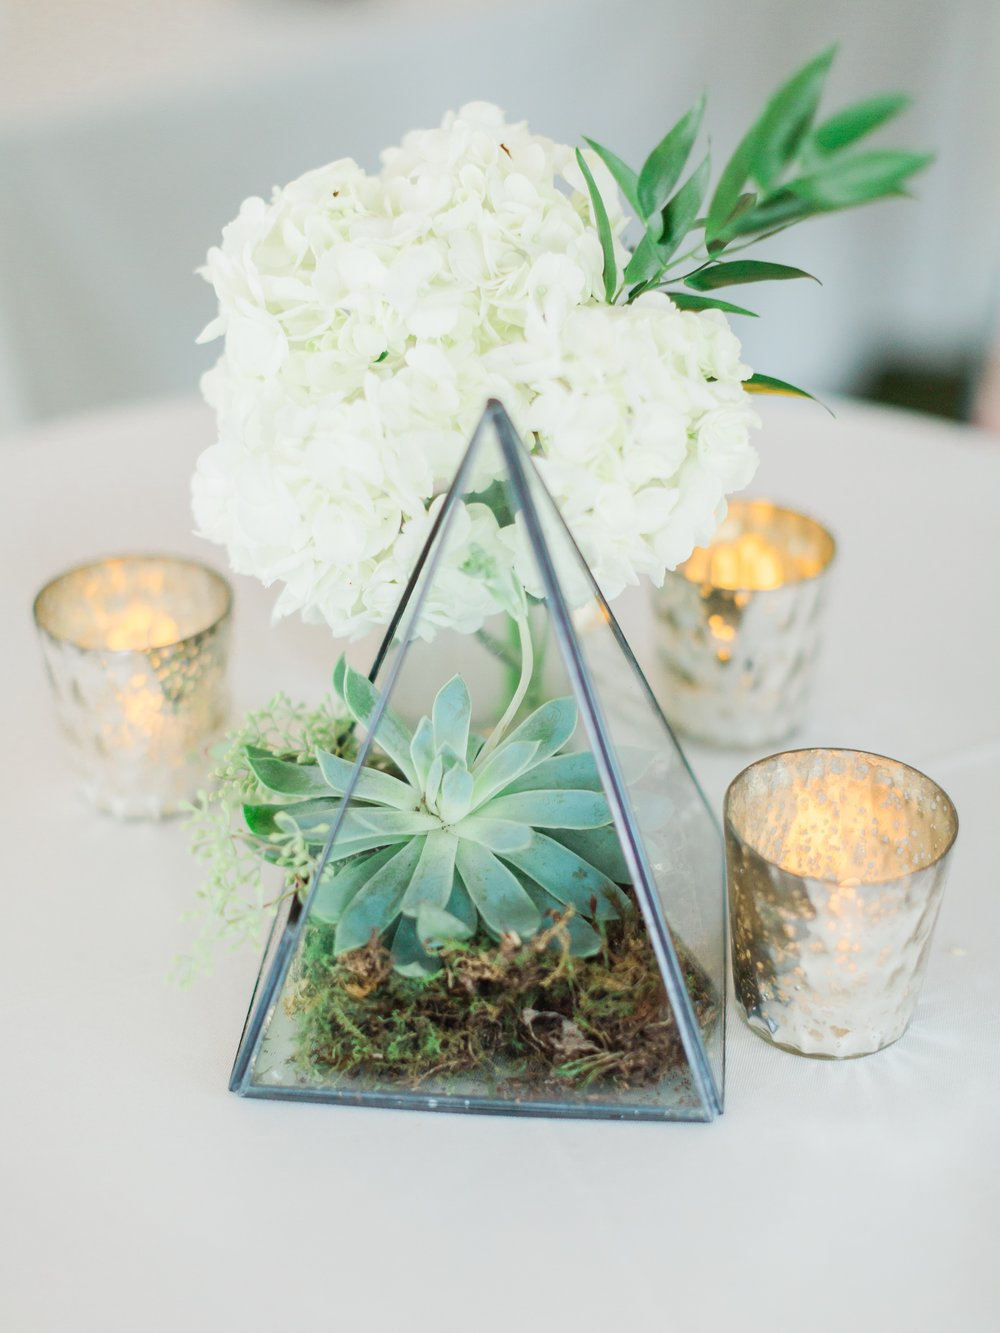 Jessie Barksdale Photography_bella flora 30a beach wedding inspiration_modern reception decor_succulent in glass terrarium